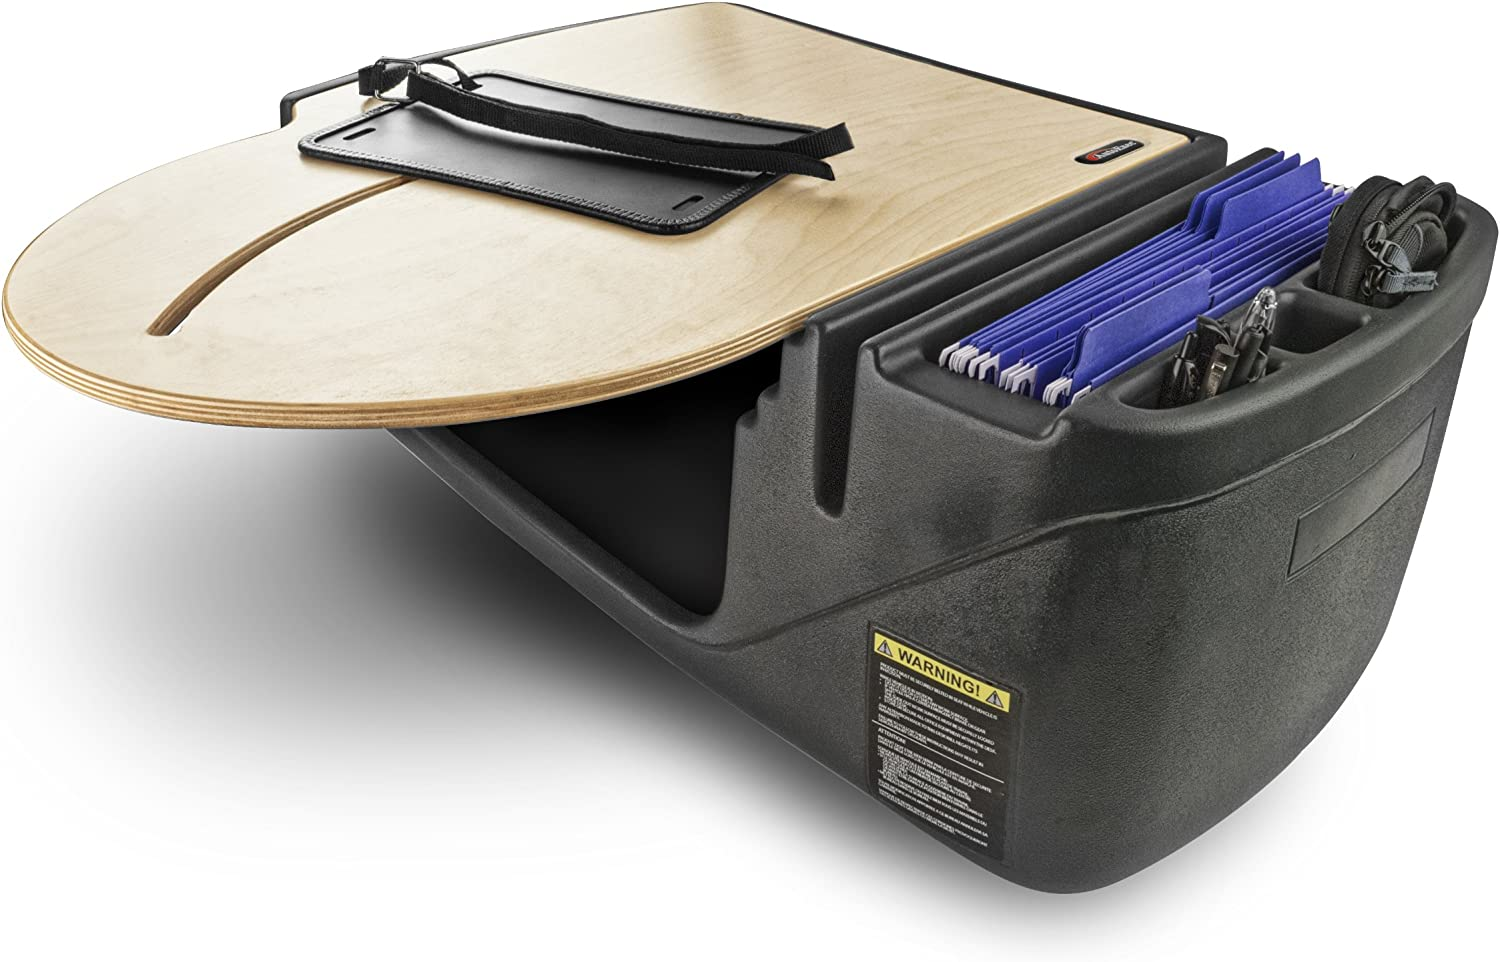 RoadTruckSuper-02Elite RoadMaster Truck Desk with Built-In 200W Inverter and Printer Stand AutoExec